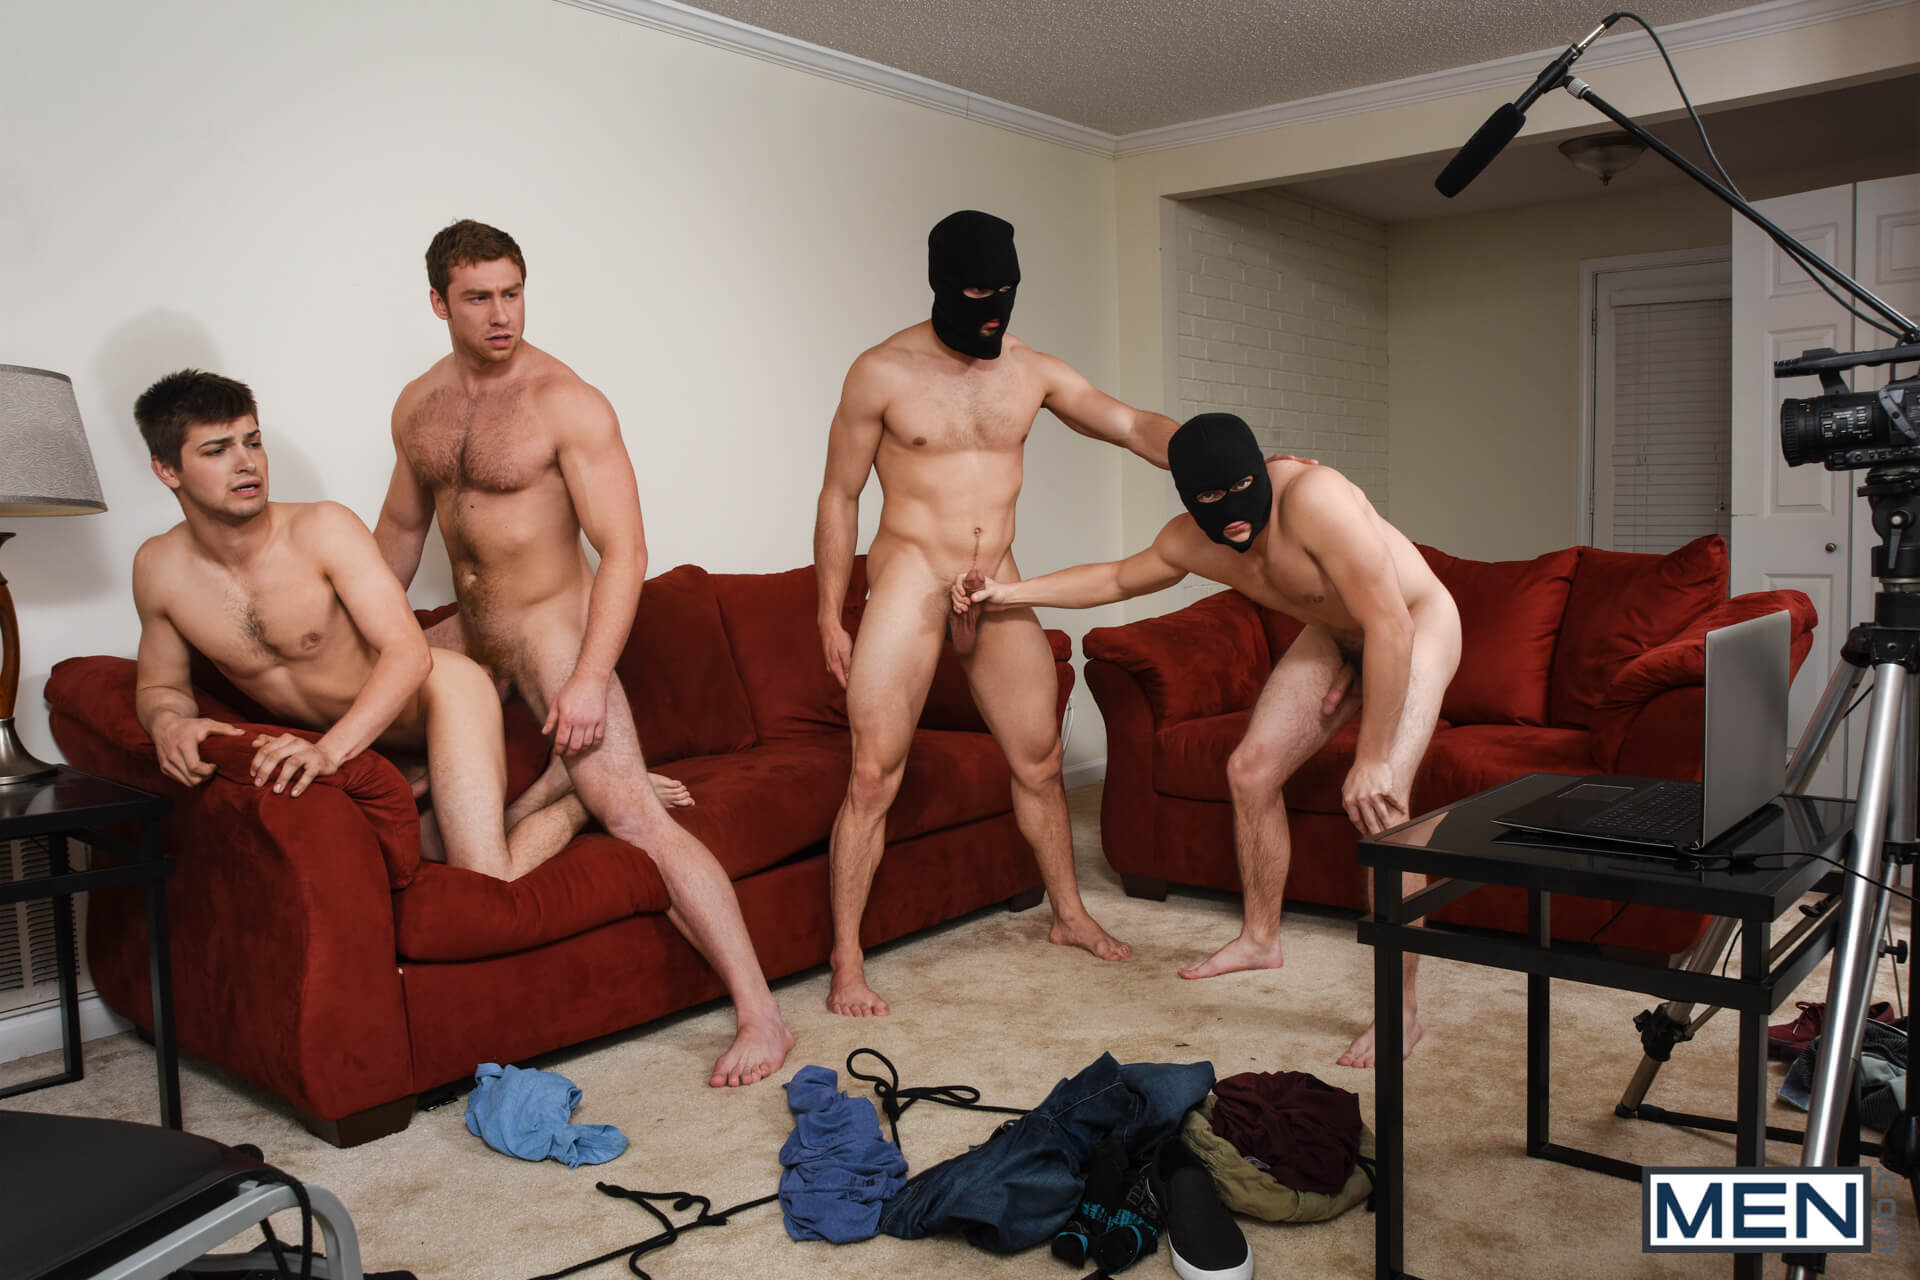 men jizz orgy stealing johnny part 3 connor maguire jason maddox johnny rapid will braun gay porn blog image 27